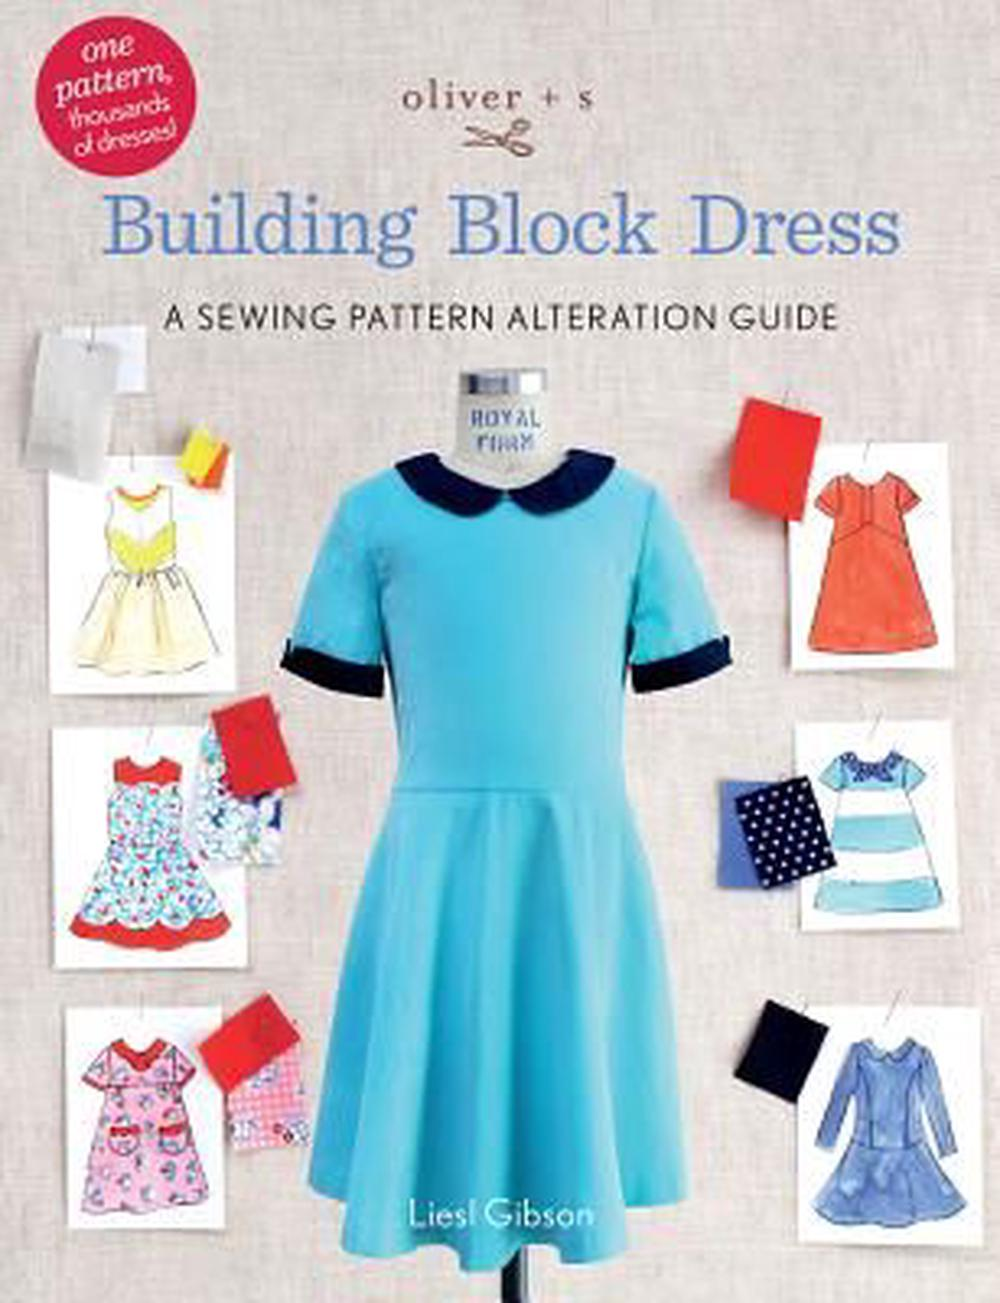 Oliver + S Building Block Dress: A Sewing Pattern Alteration Guide